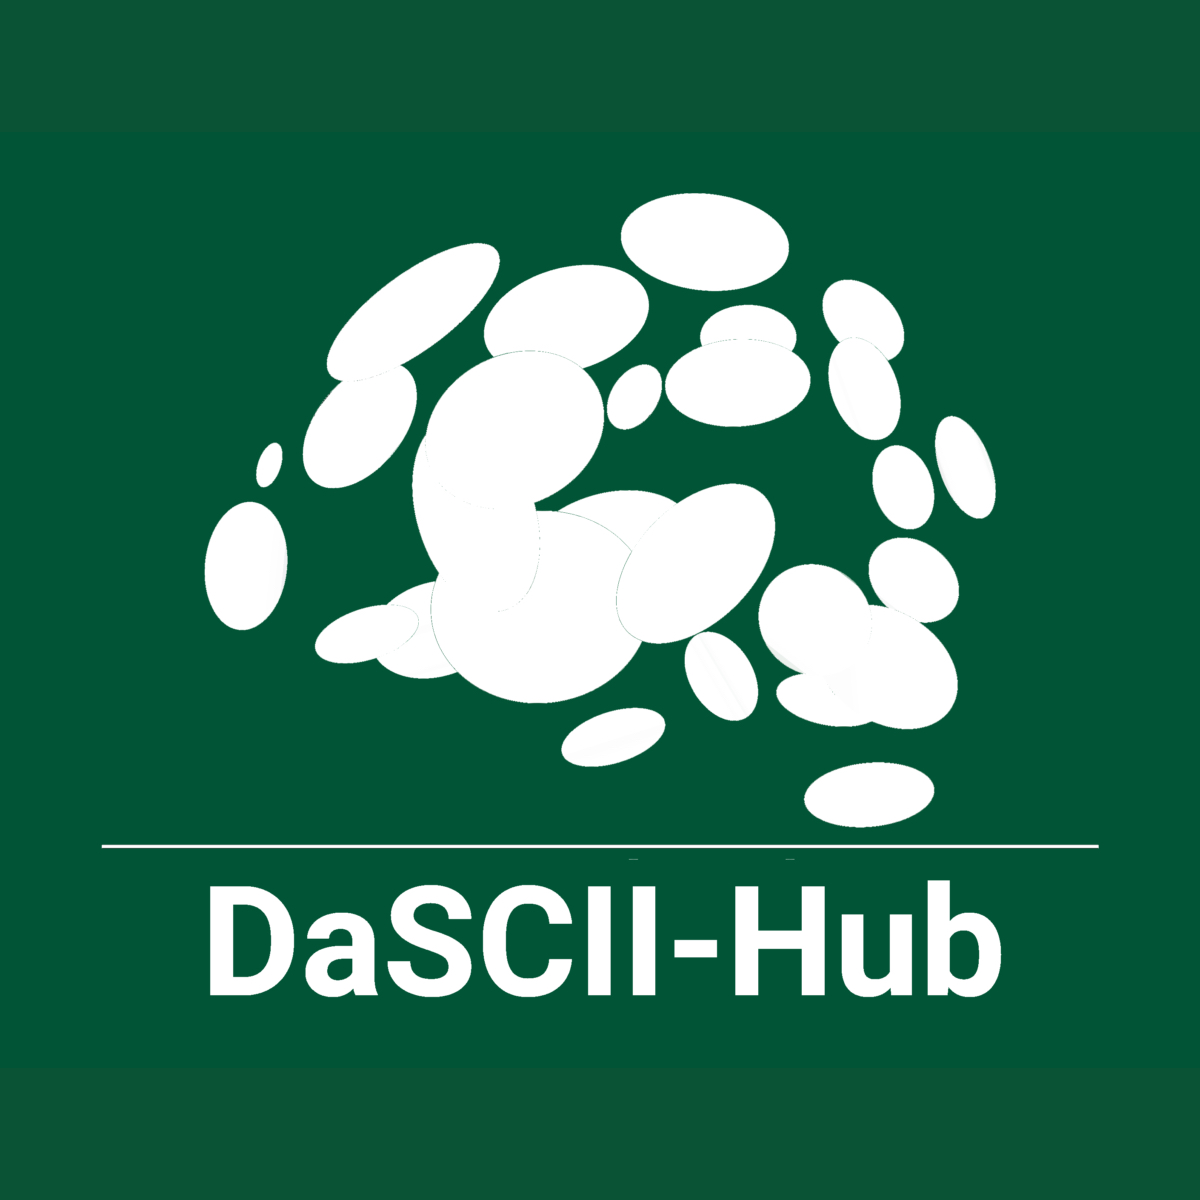 DIH-DaSCI Innovation Hub